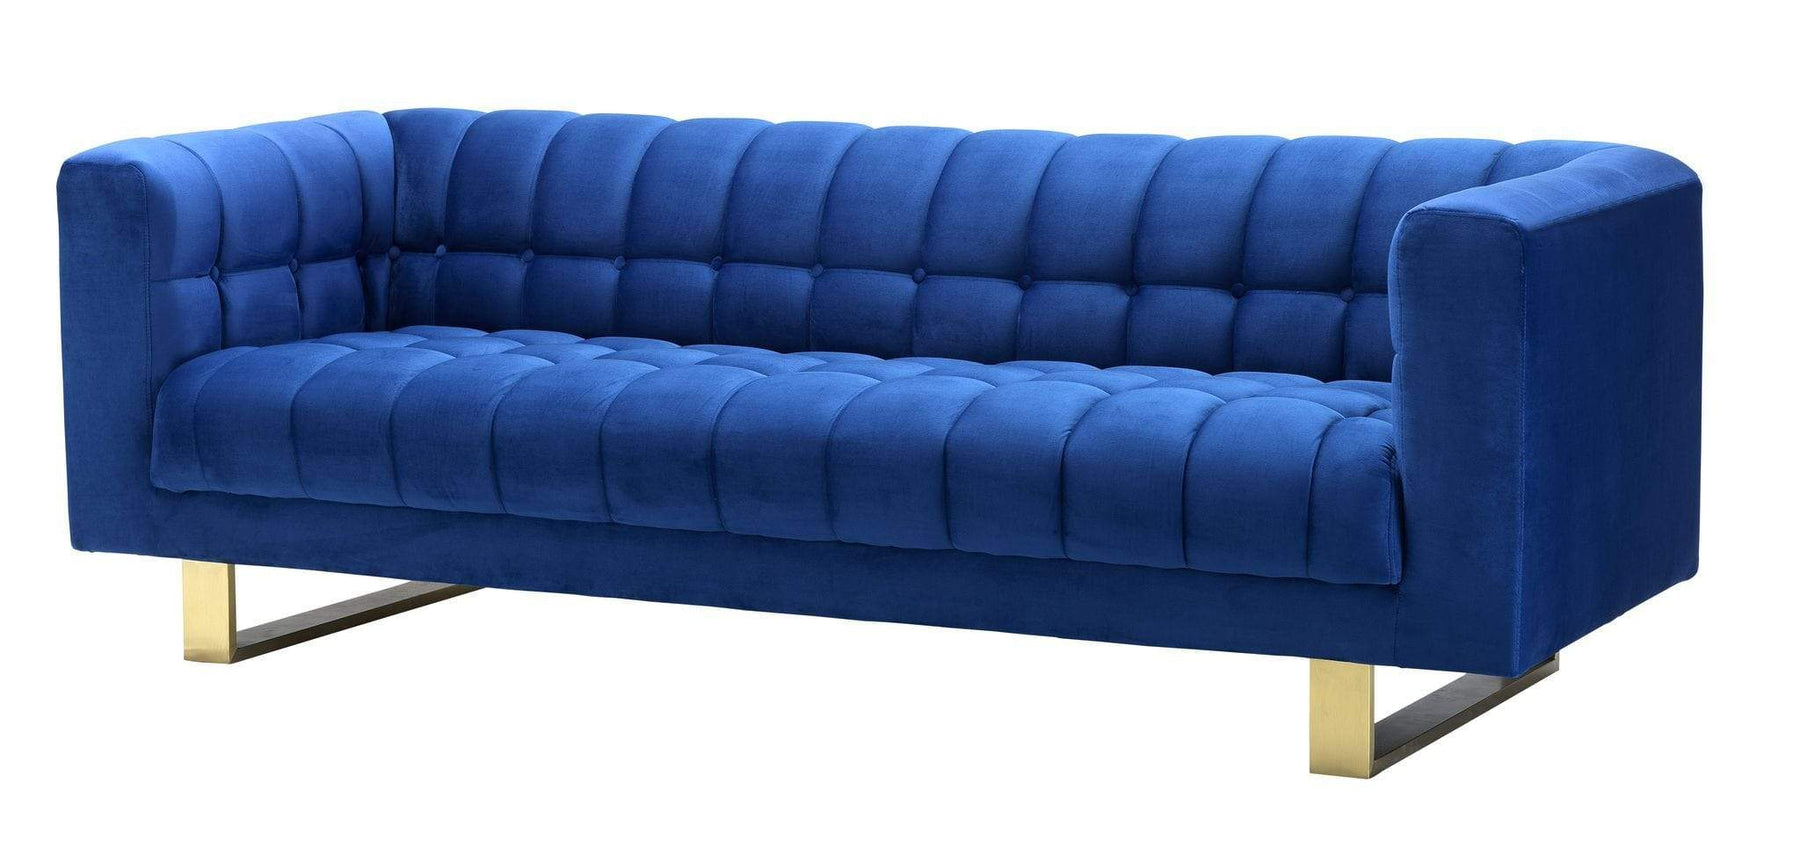 Angelica Sofa Blue Greater Vancouver Furniture Accents Home